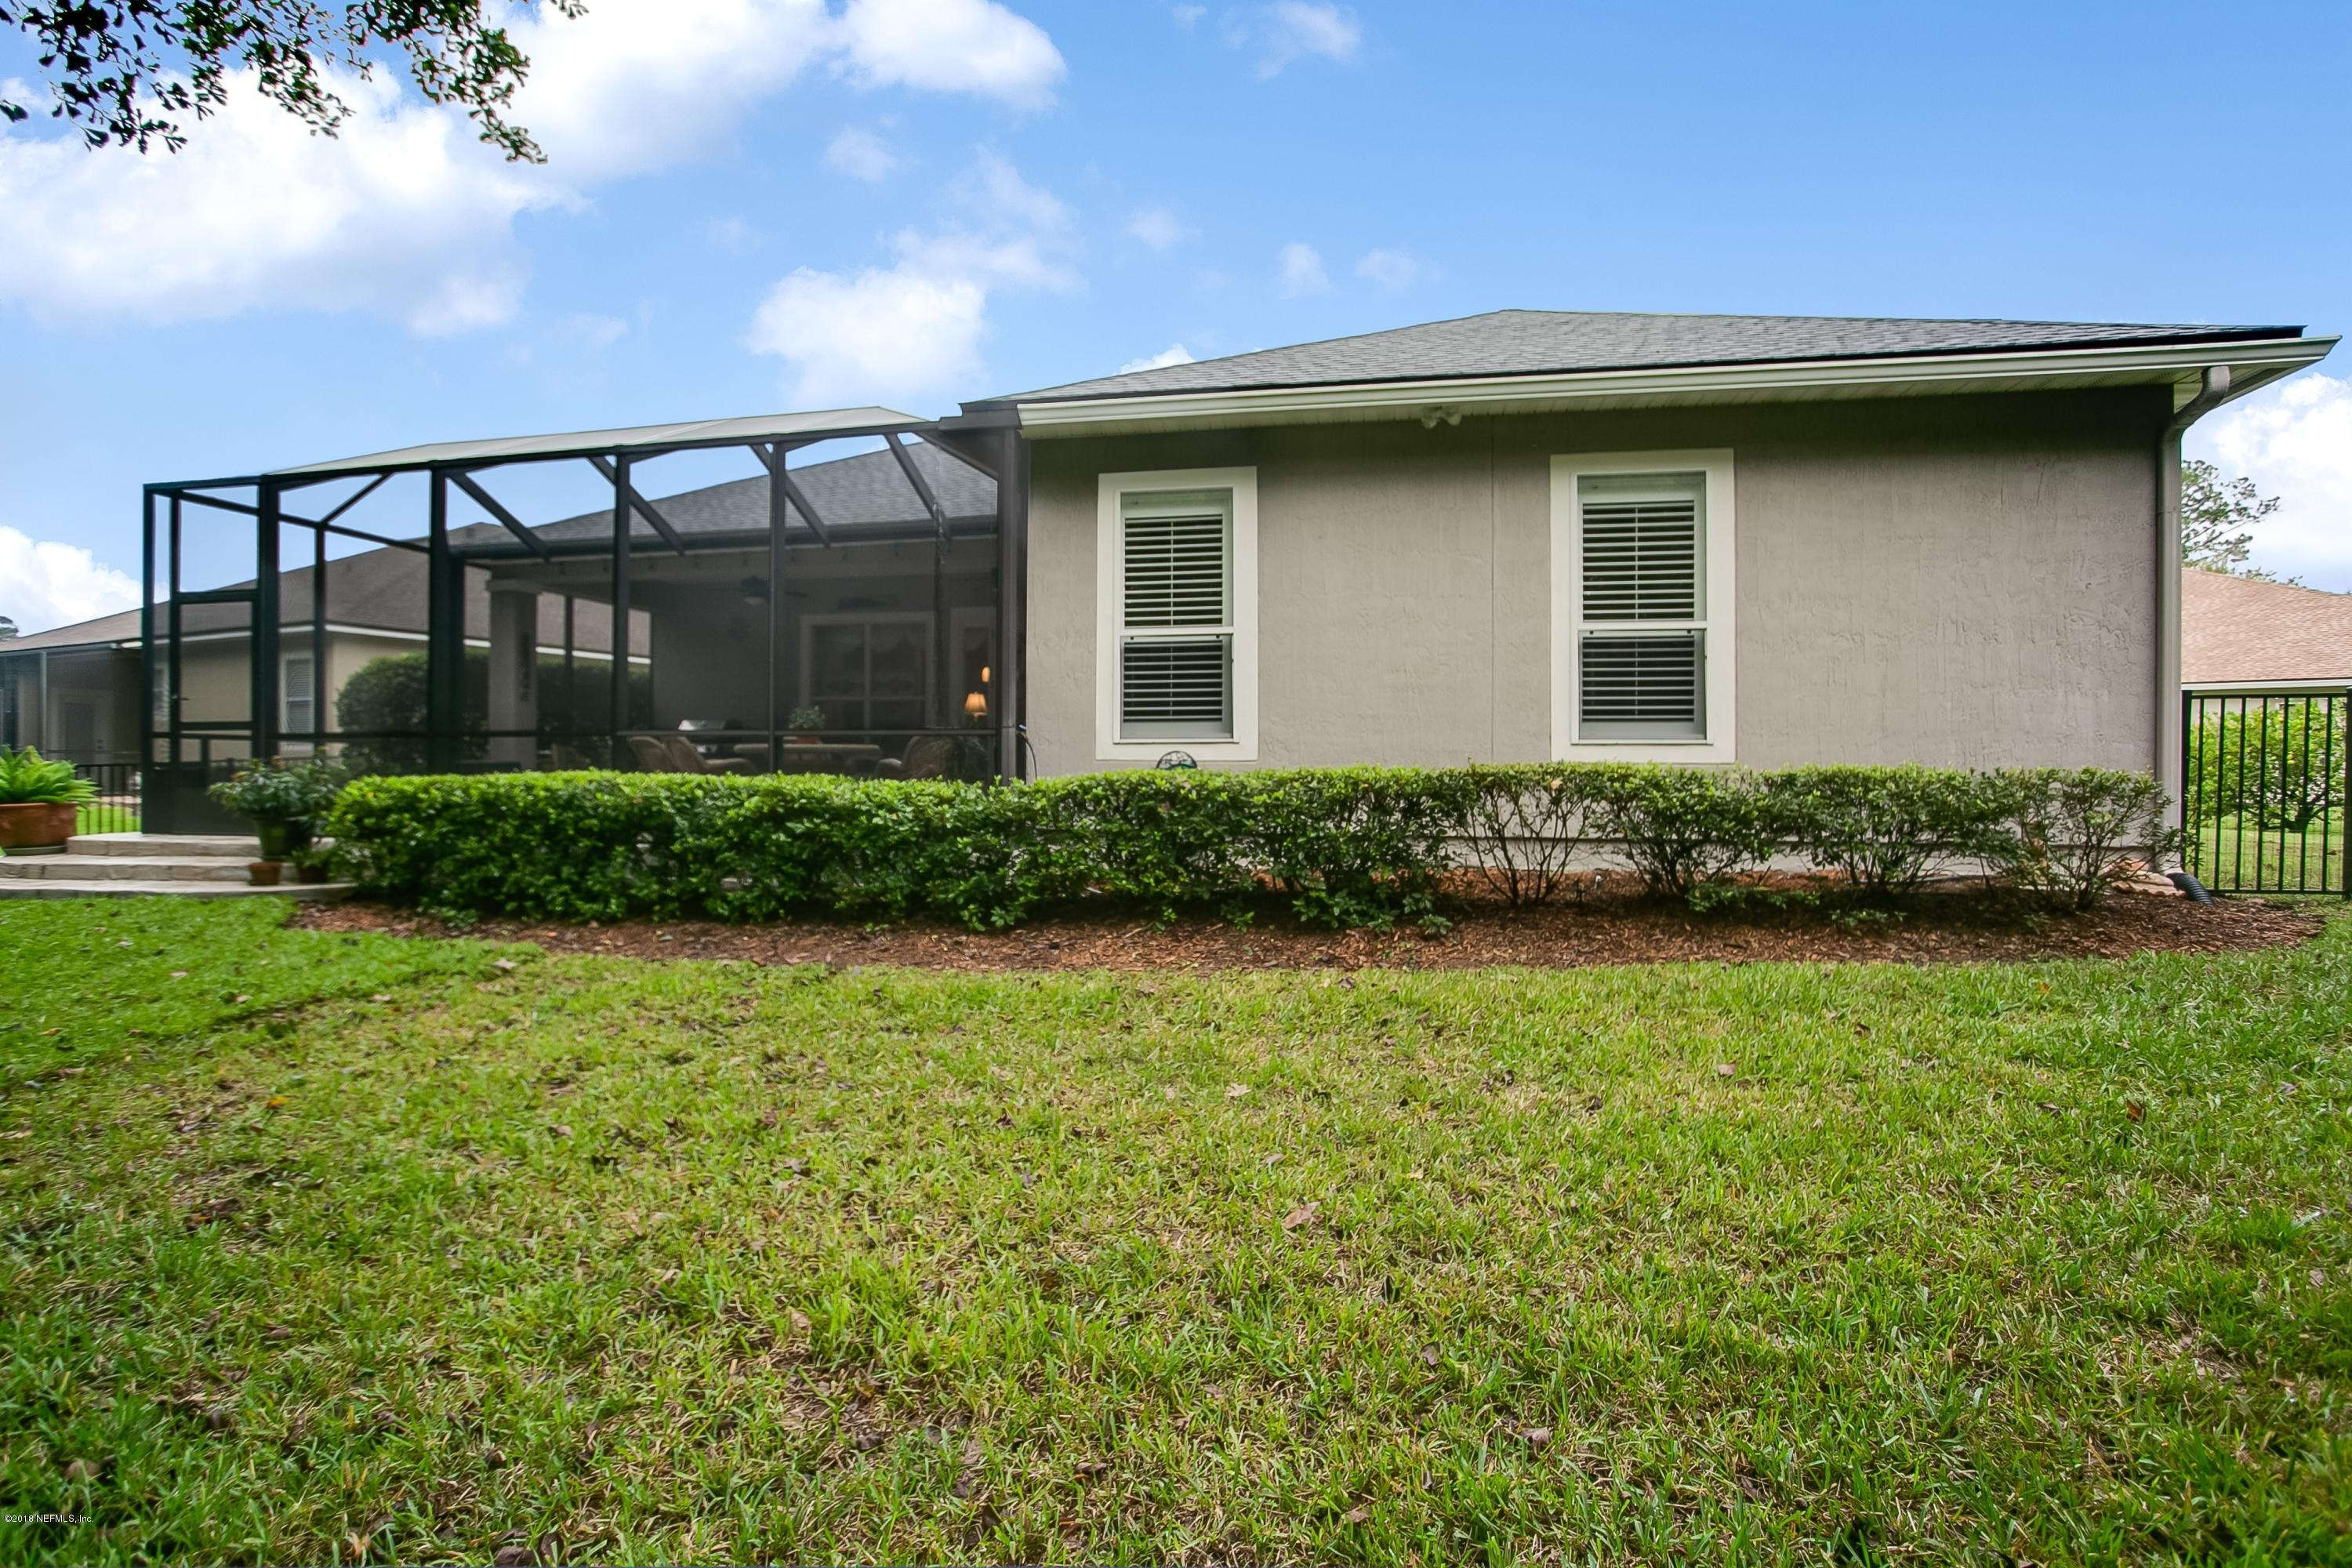 1344 BARRINGTON, ST AUGUSTINE, FLORIDA 32092, 4 Bedrooms Bedrooms, ,2 BathroomsBathrooms,Residential - single family,For sale,BARRINGTON,990385